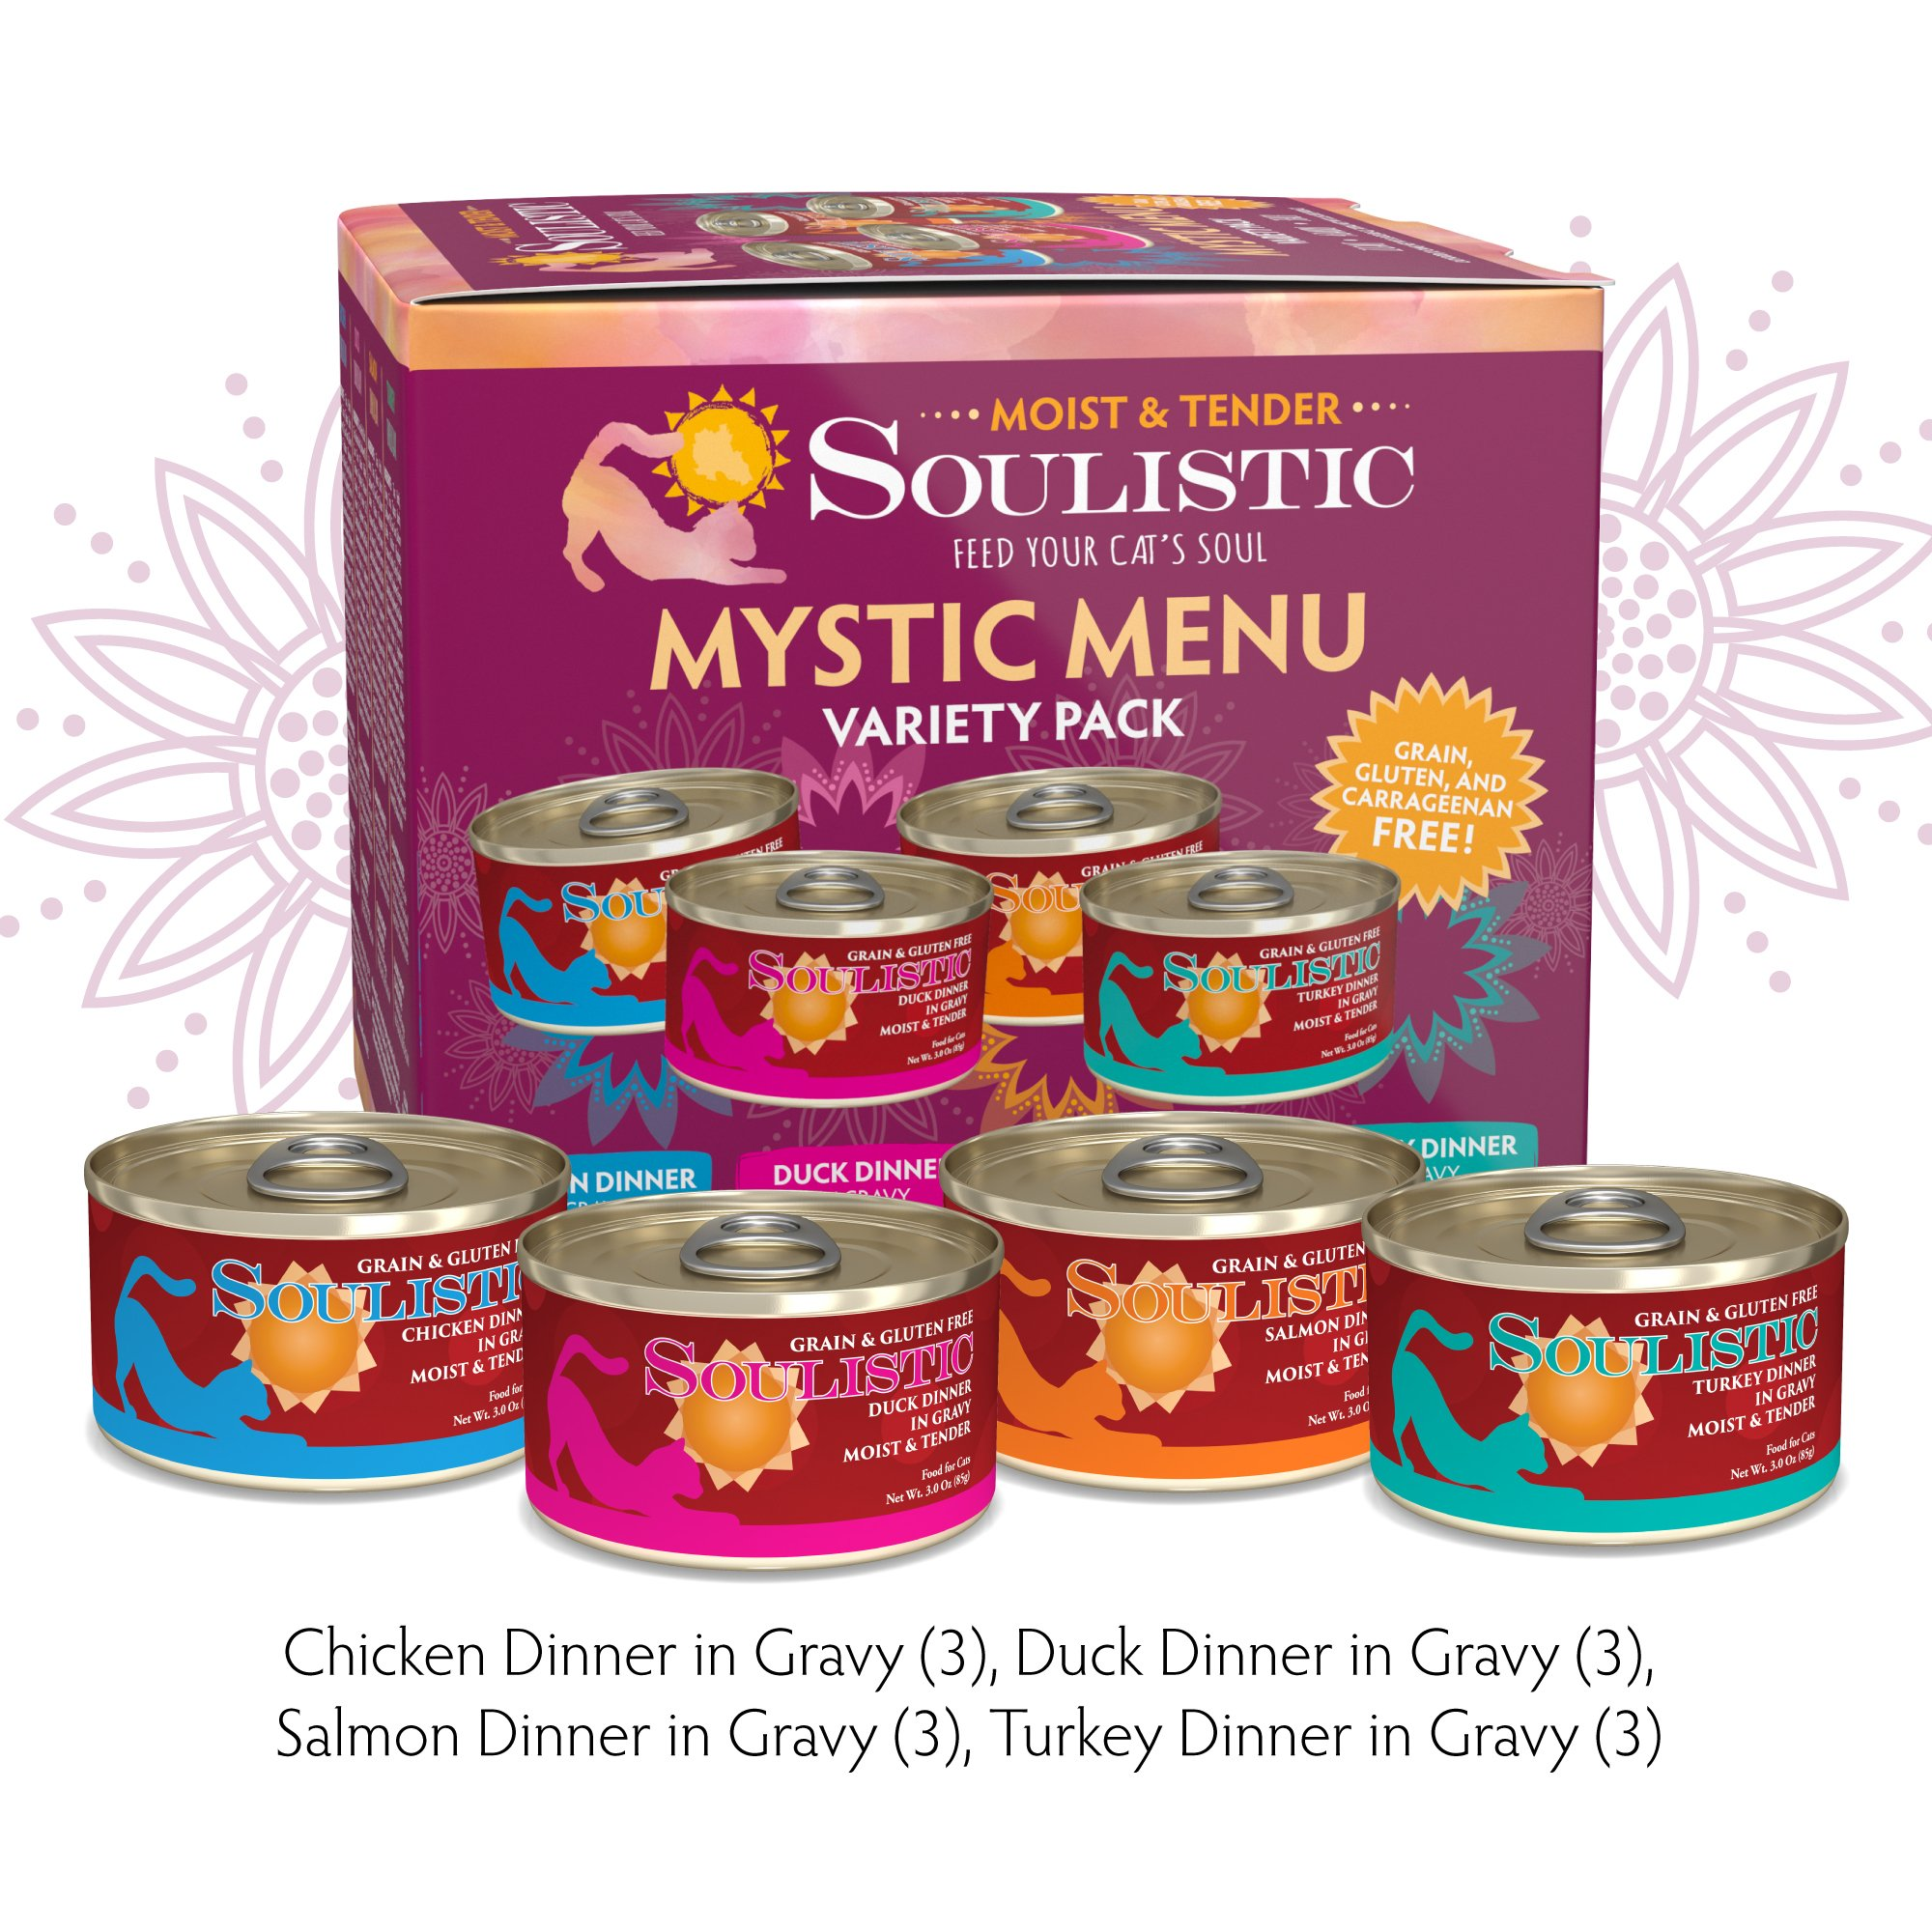 Soulistic Moist & Tender Variety Pack Cat Food | Petco at Petco in Braselton, GA | Tuggl